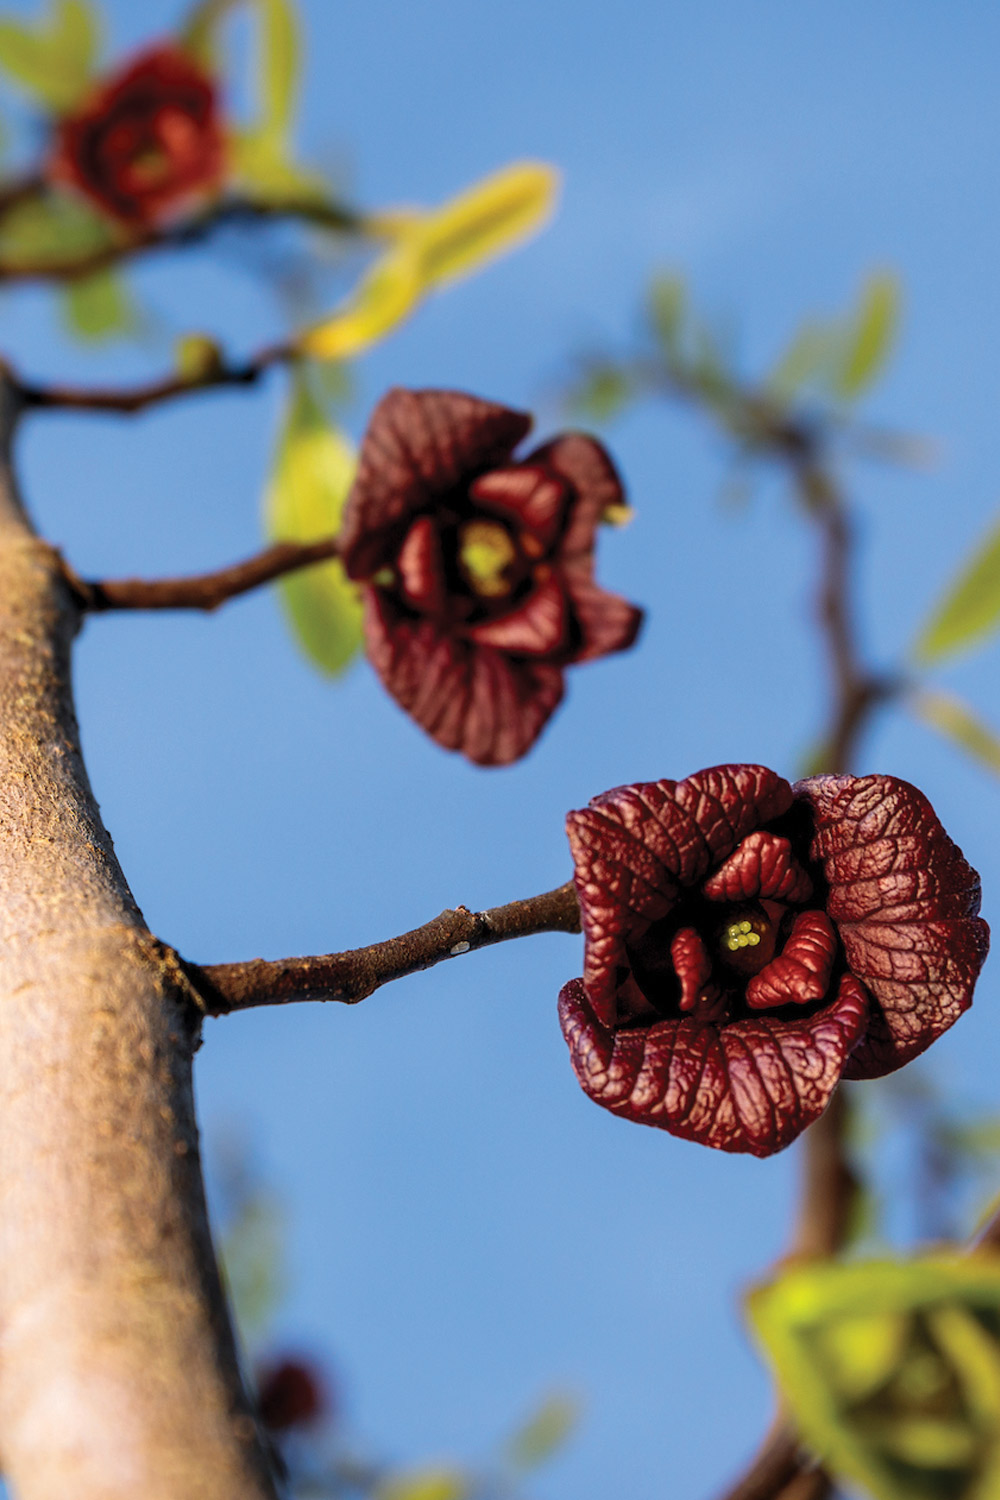 Pawpaw blooms are reddish mahogany in color